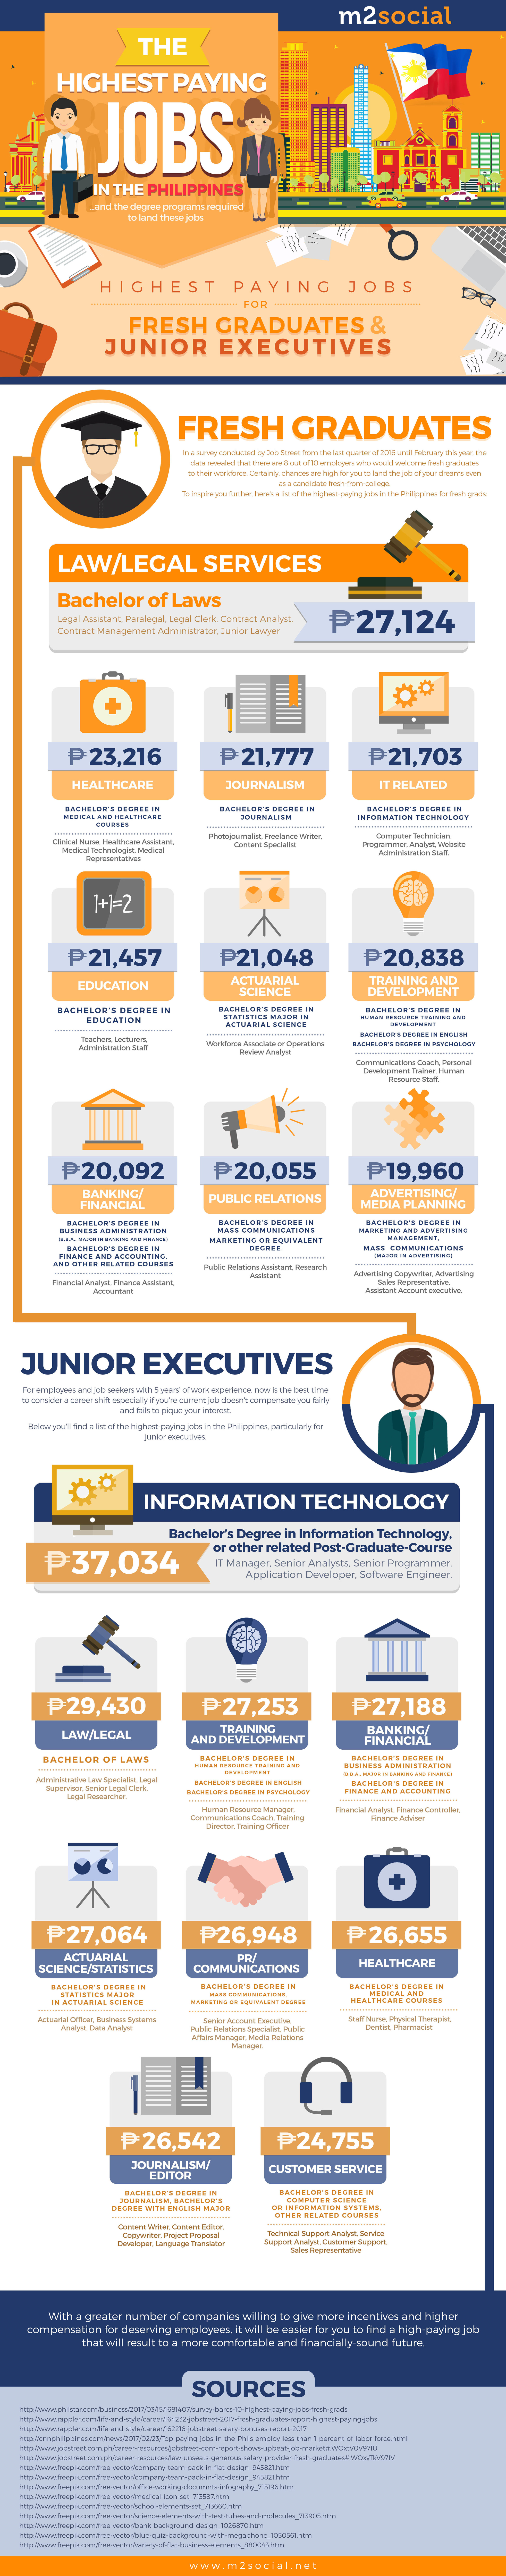 The Highest Paying Jobs in the Philippines